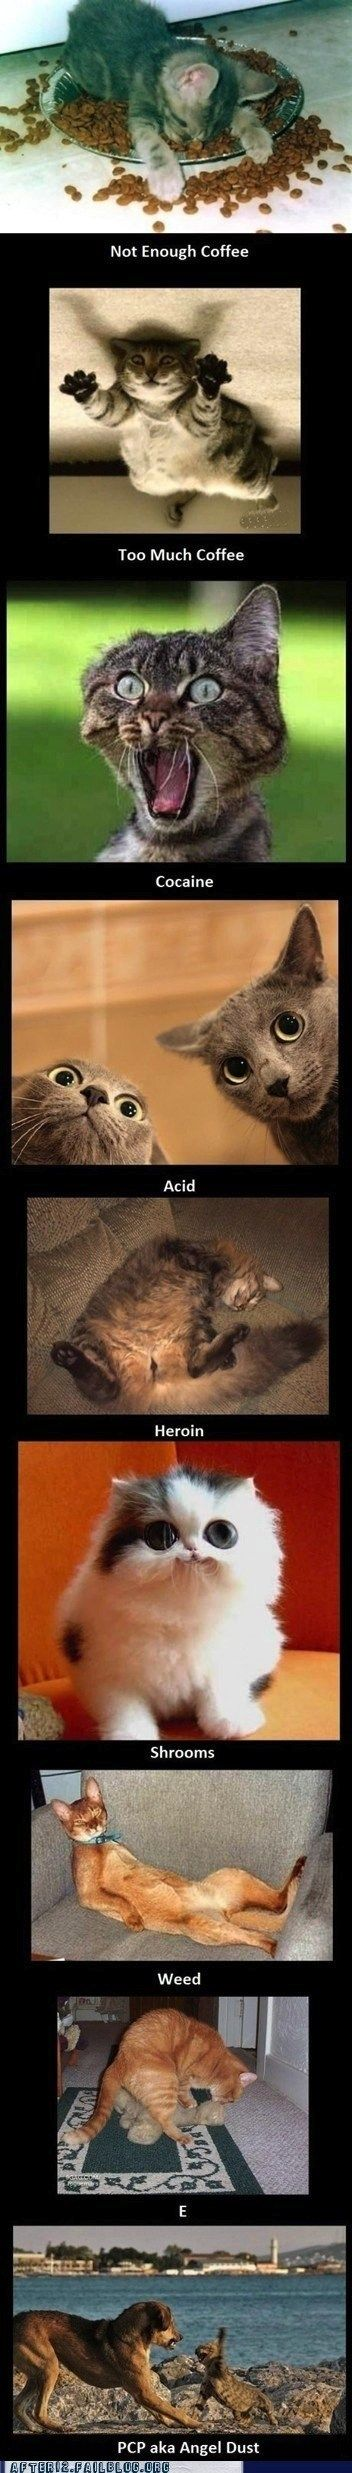 After 12: Crunk Critters: Is Your Cat On Drugs? Here's What To Look For